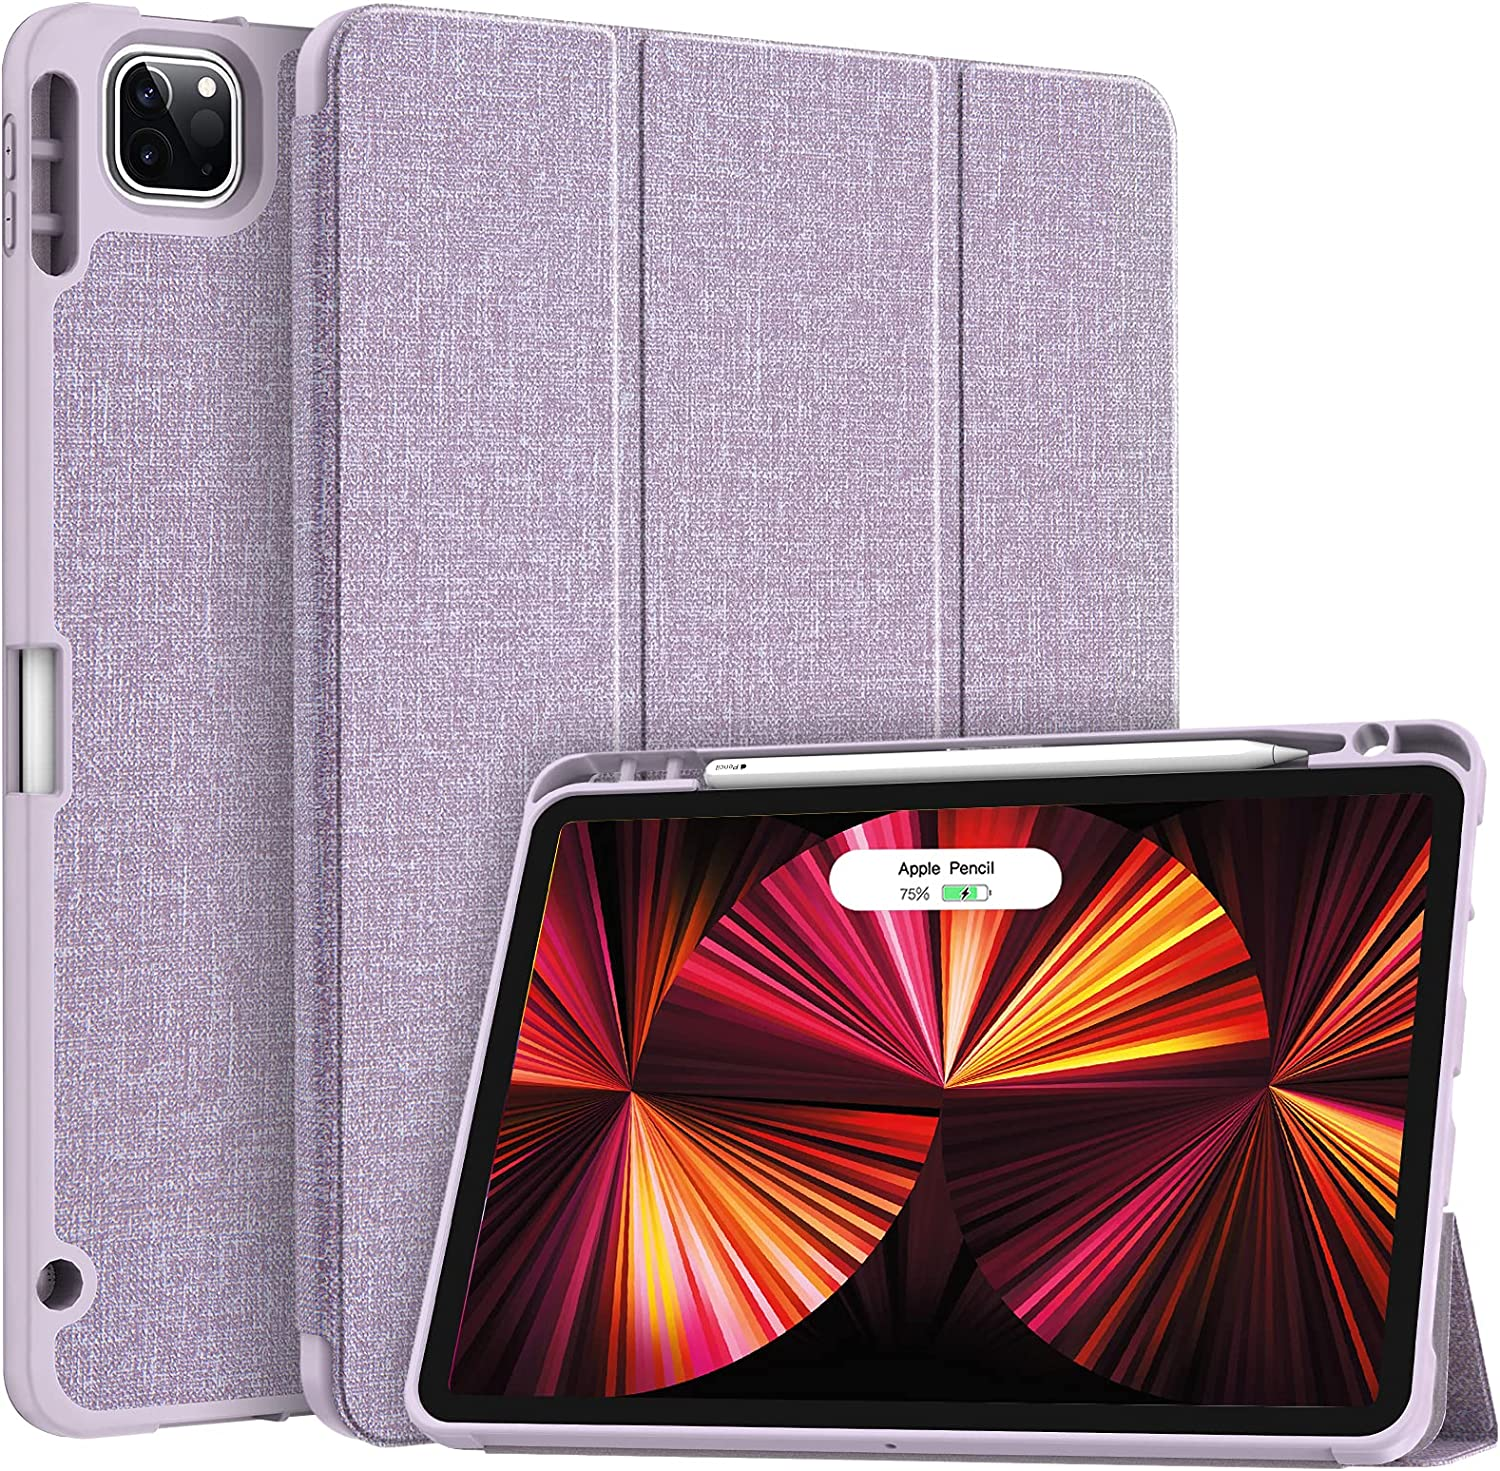 Soke New iPad Pro 11 Case 2021 with Pencil Holder - [Full Body Protection + 2nd Gen Apple Pencil Charging + Auto Wake/Sleep], Soft TPU Back Cover for 2021 iPad Pro 11 inch(Violet)